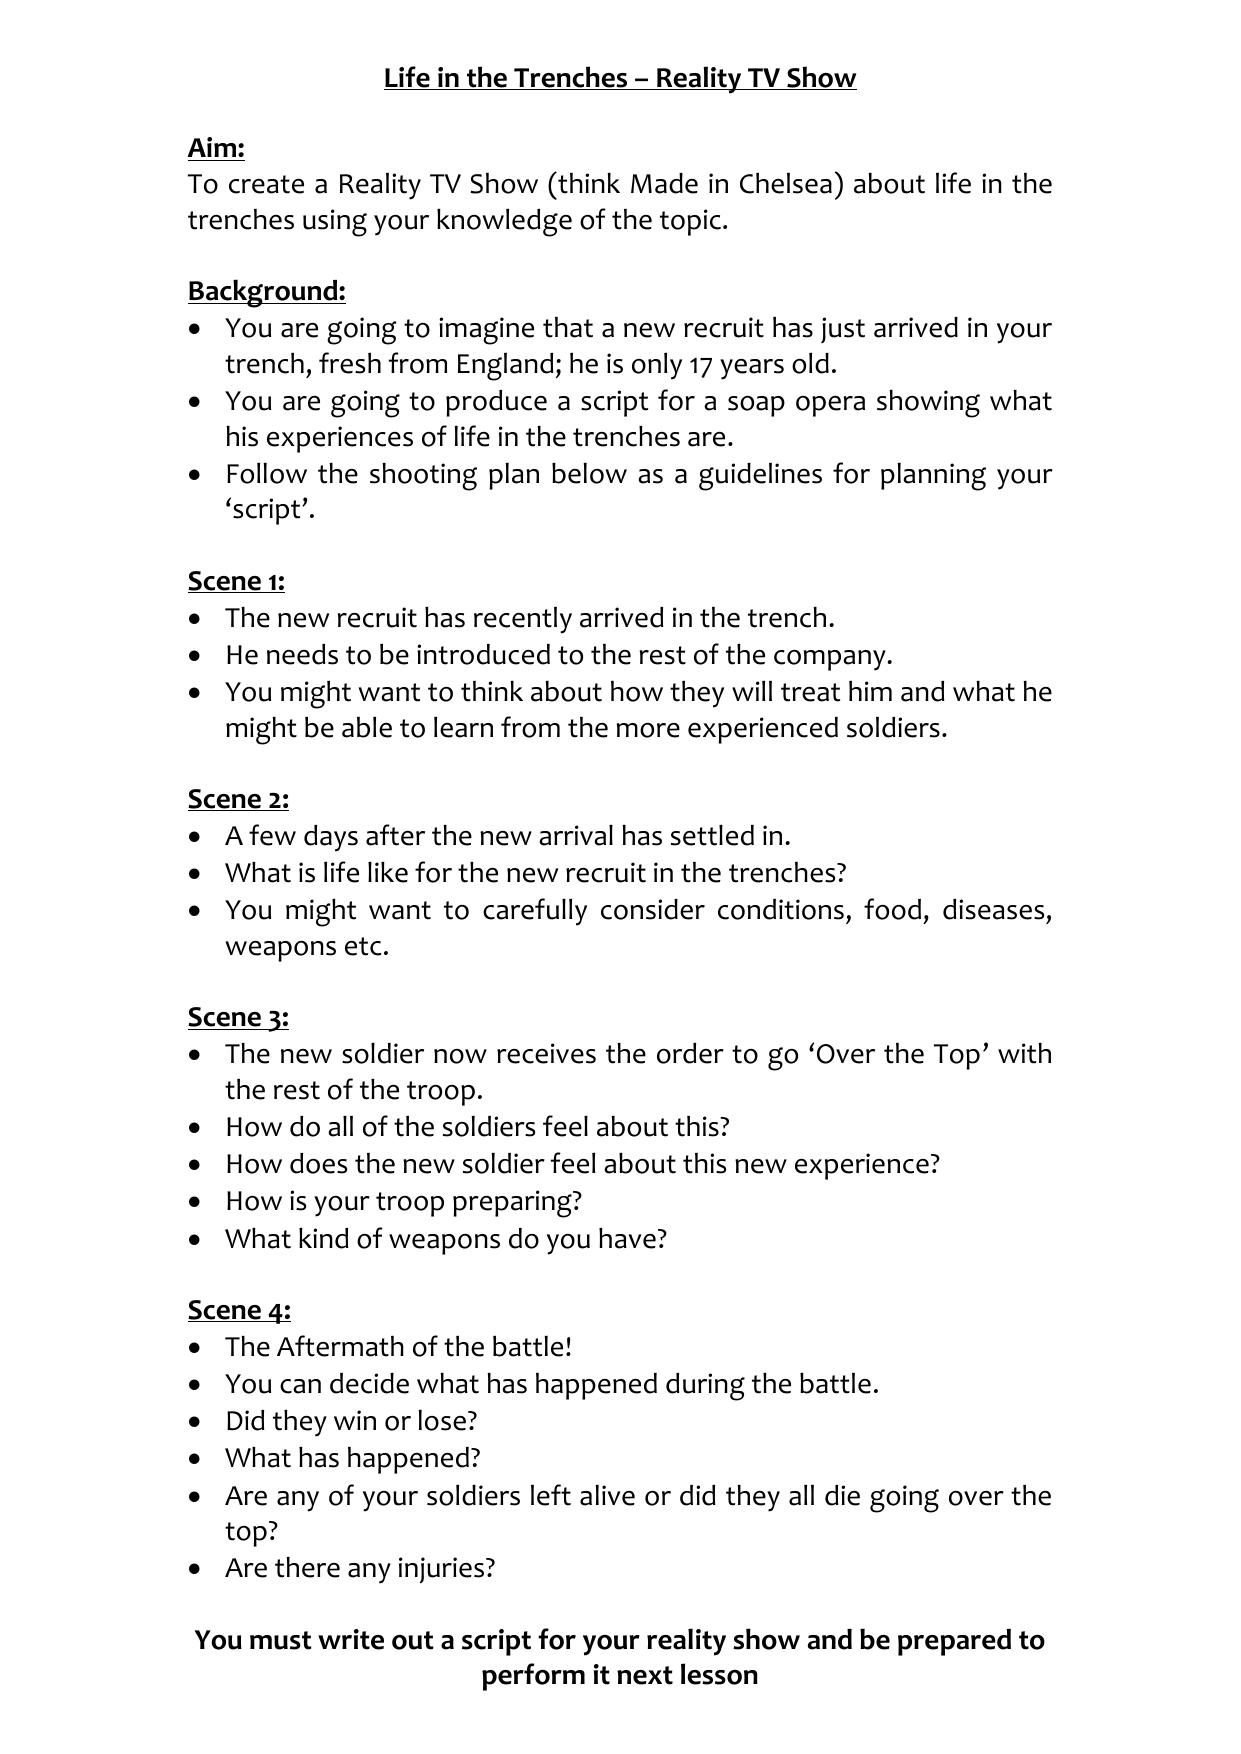 Middle Ages Timeline Worksheet  Briefencounters Regarding Middle Ages Timeline Worksheet